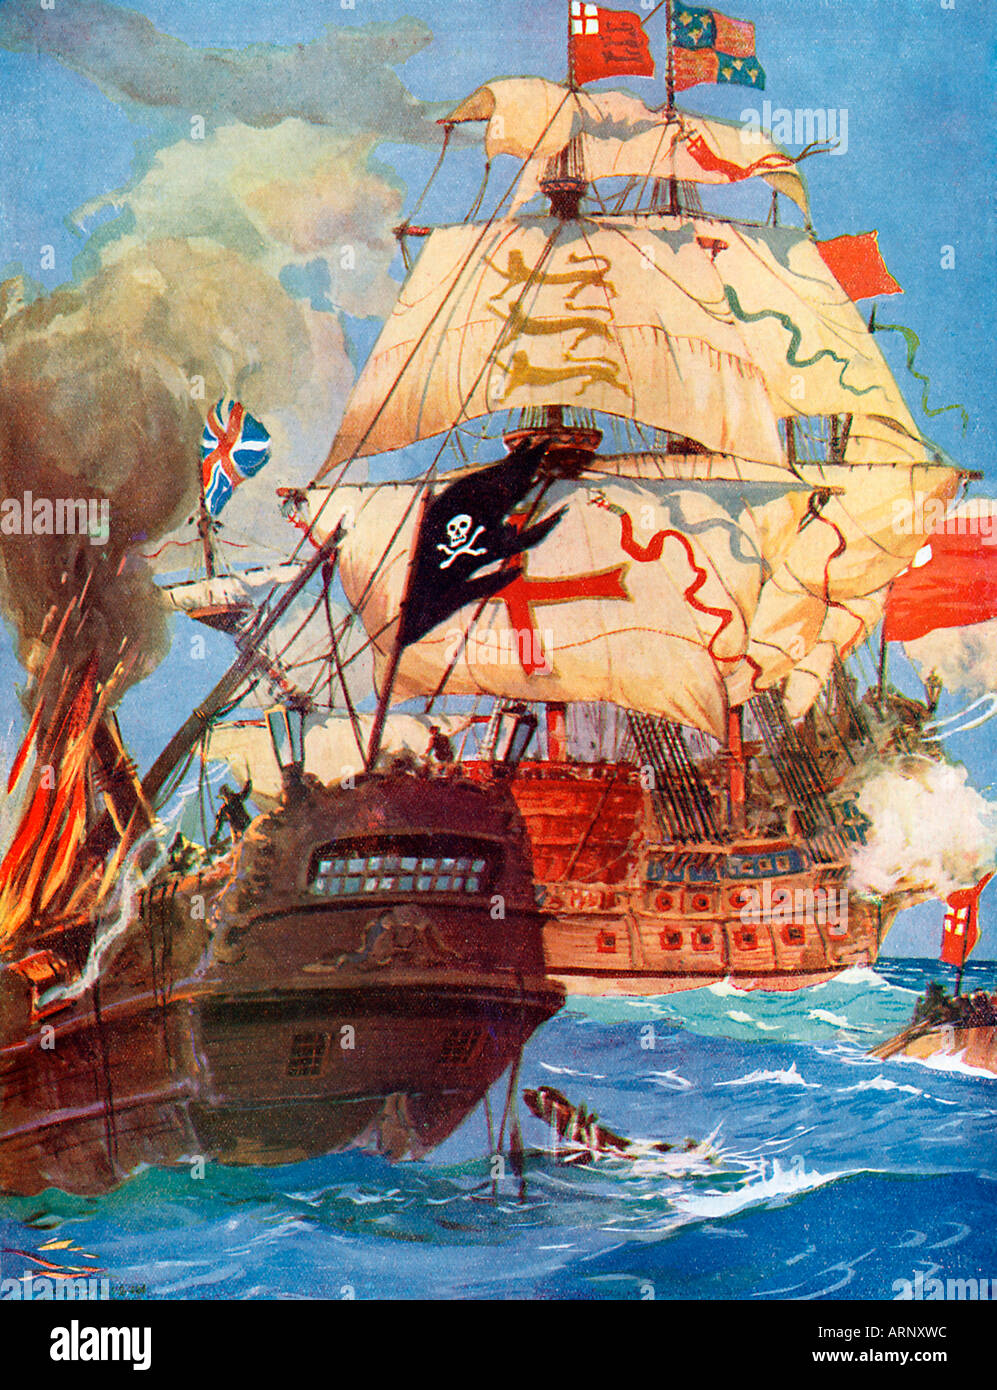 Pirate Ship Boarded, Illustration of an engagement in the 17th Century as the Royal Navy takes on the pirate scourge - Stock Image